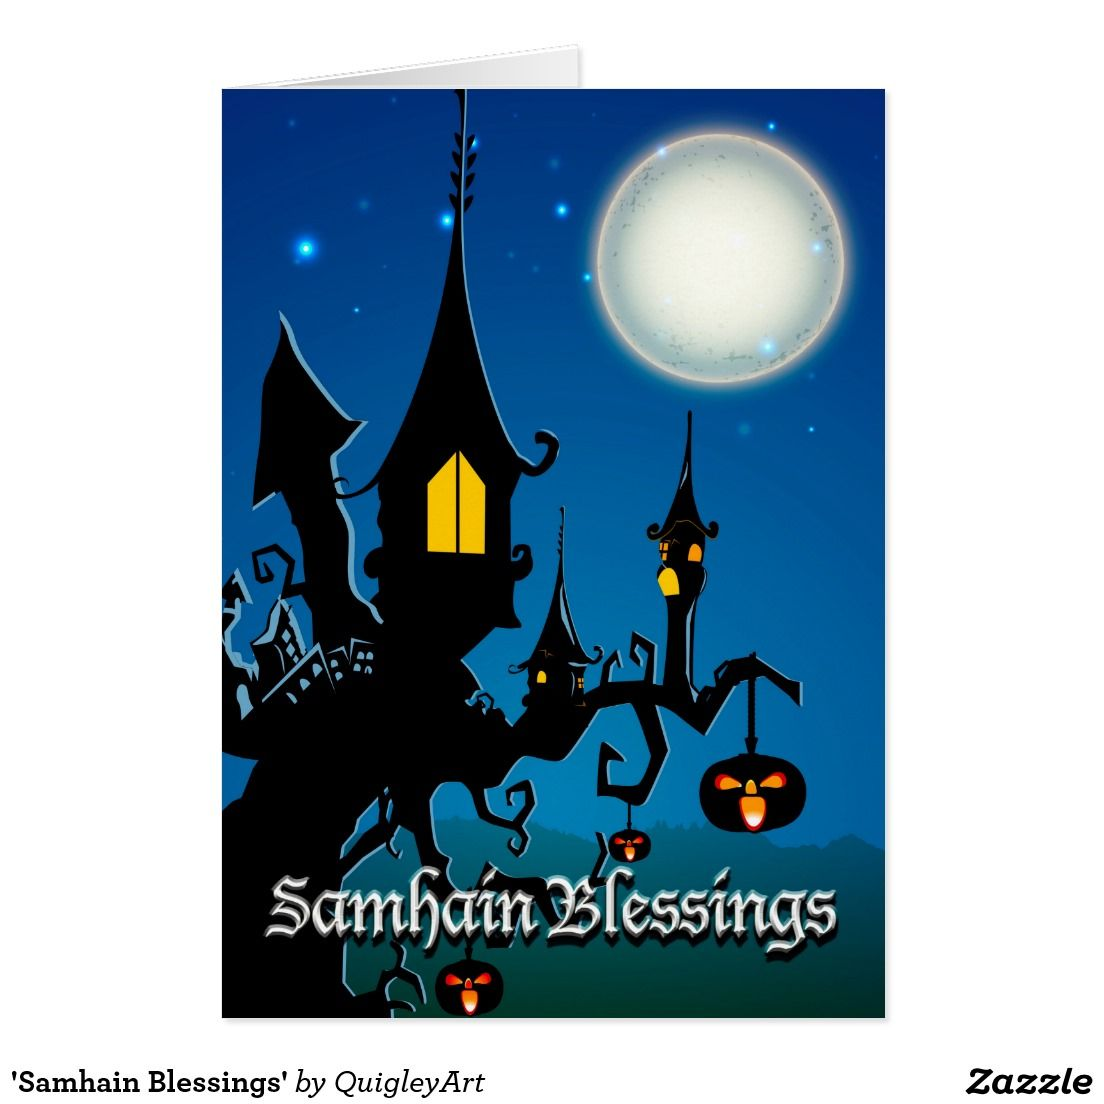 Samhain blessings card wicca pinterest wicca samhain and cards samhain blessings greeting card m4hsunfo